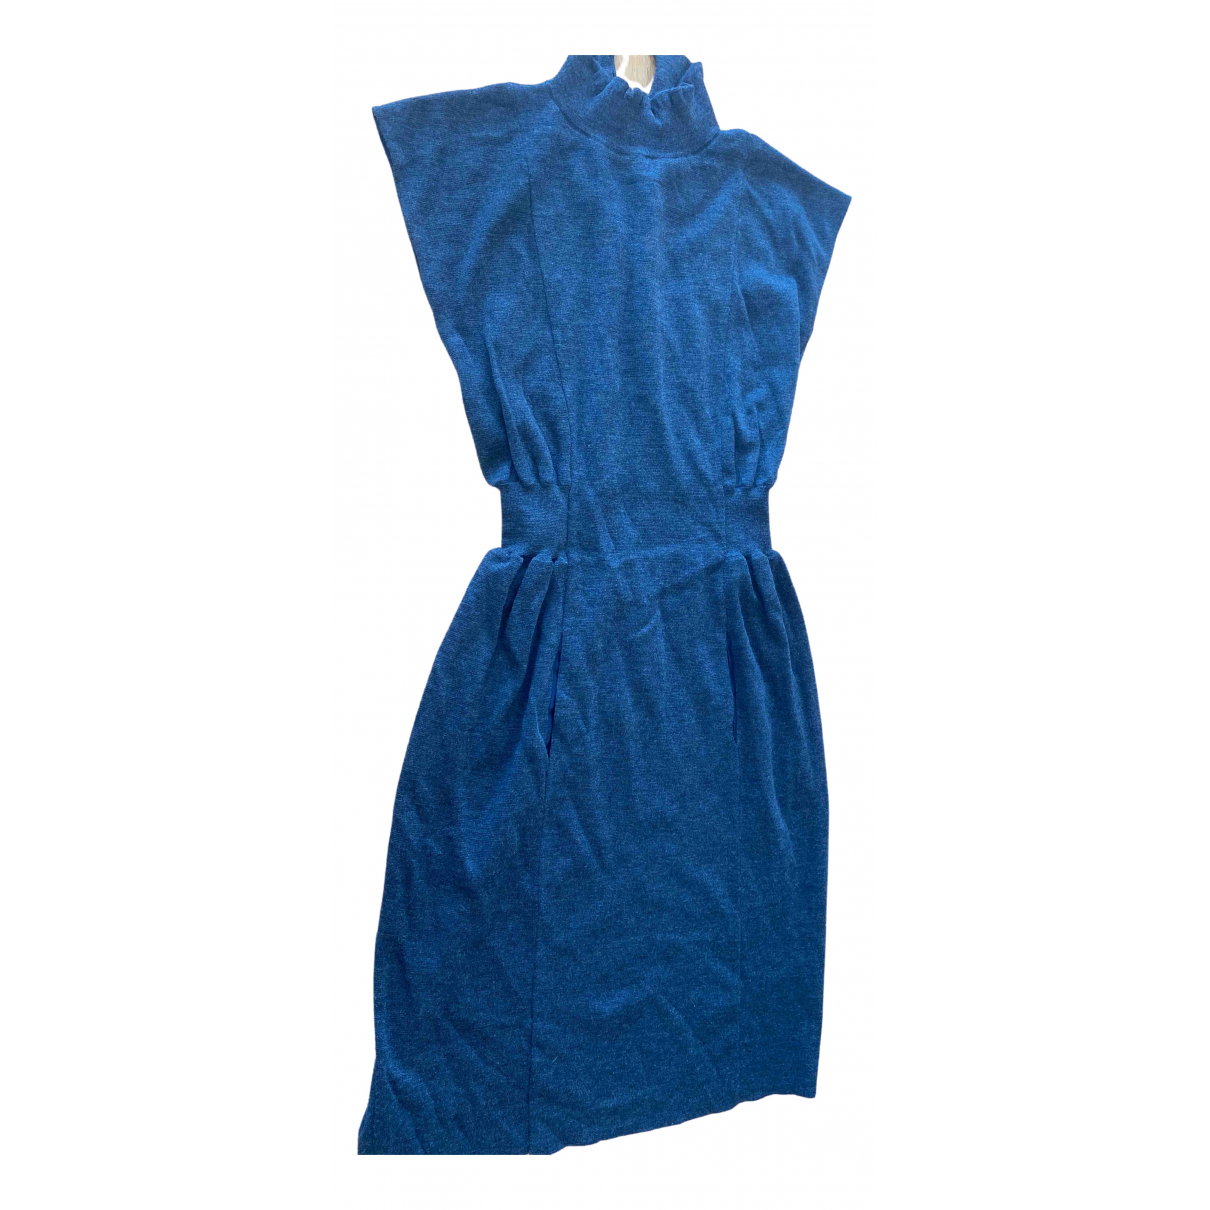 Yves Saint Laurent \N Kleid in  Grau Wolle